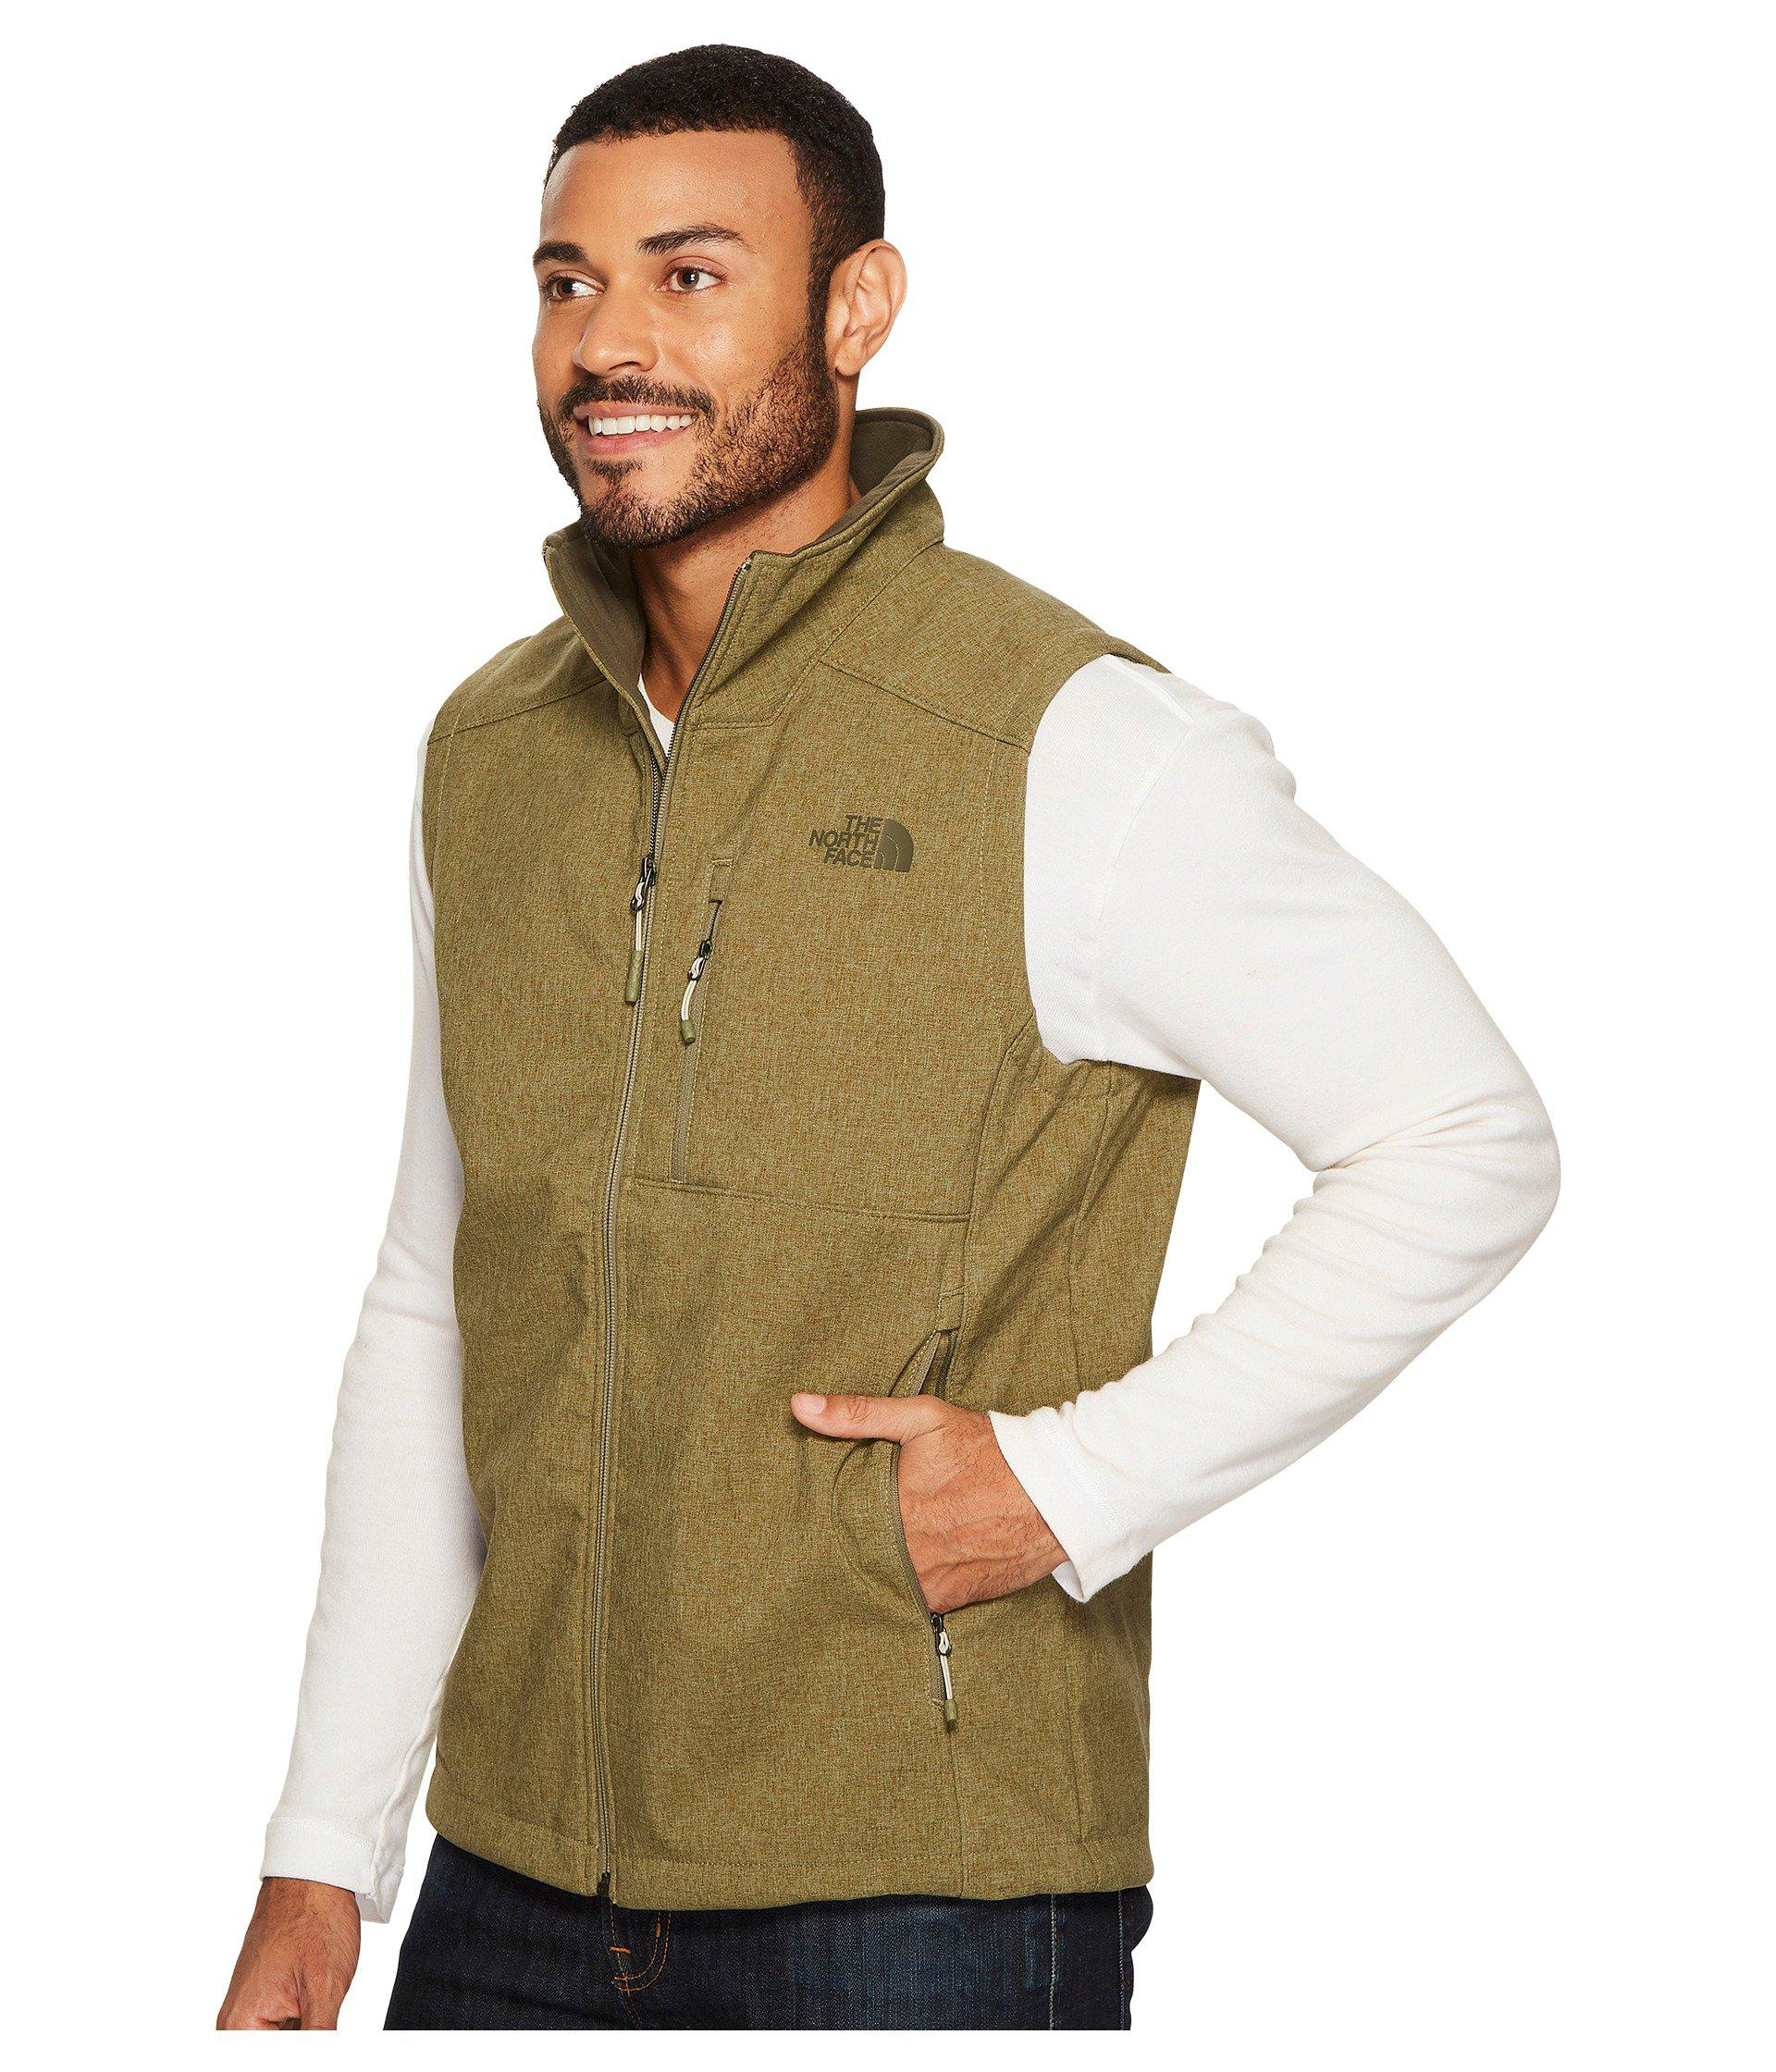 80fd04a23aa9 Lyst - The North Face Apex Bionic 2 Vest in Green for Men - Save 29%